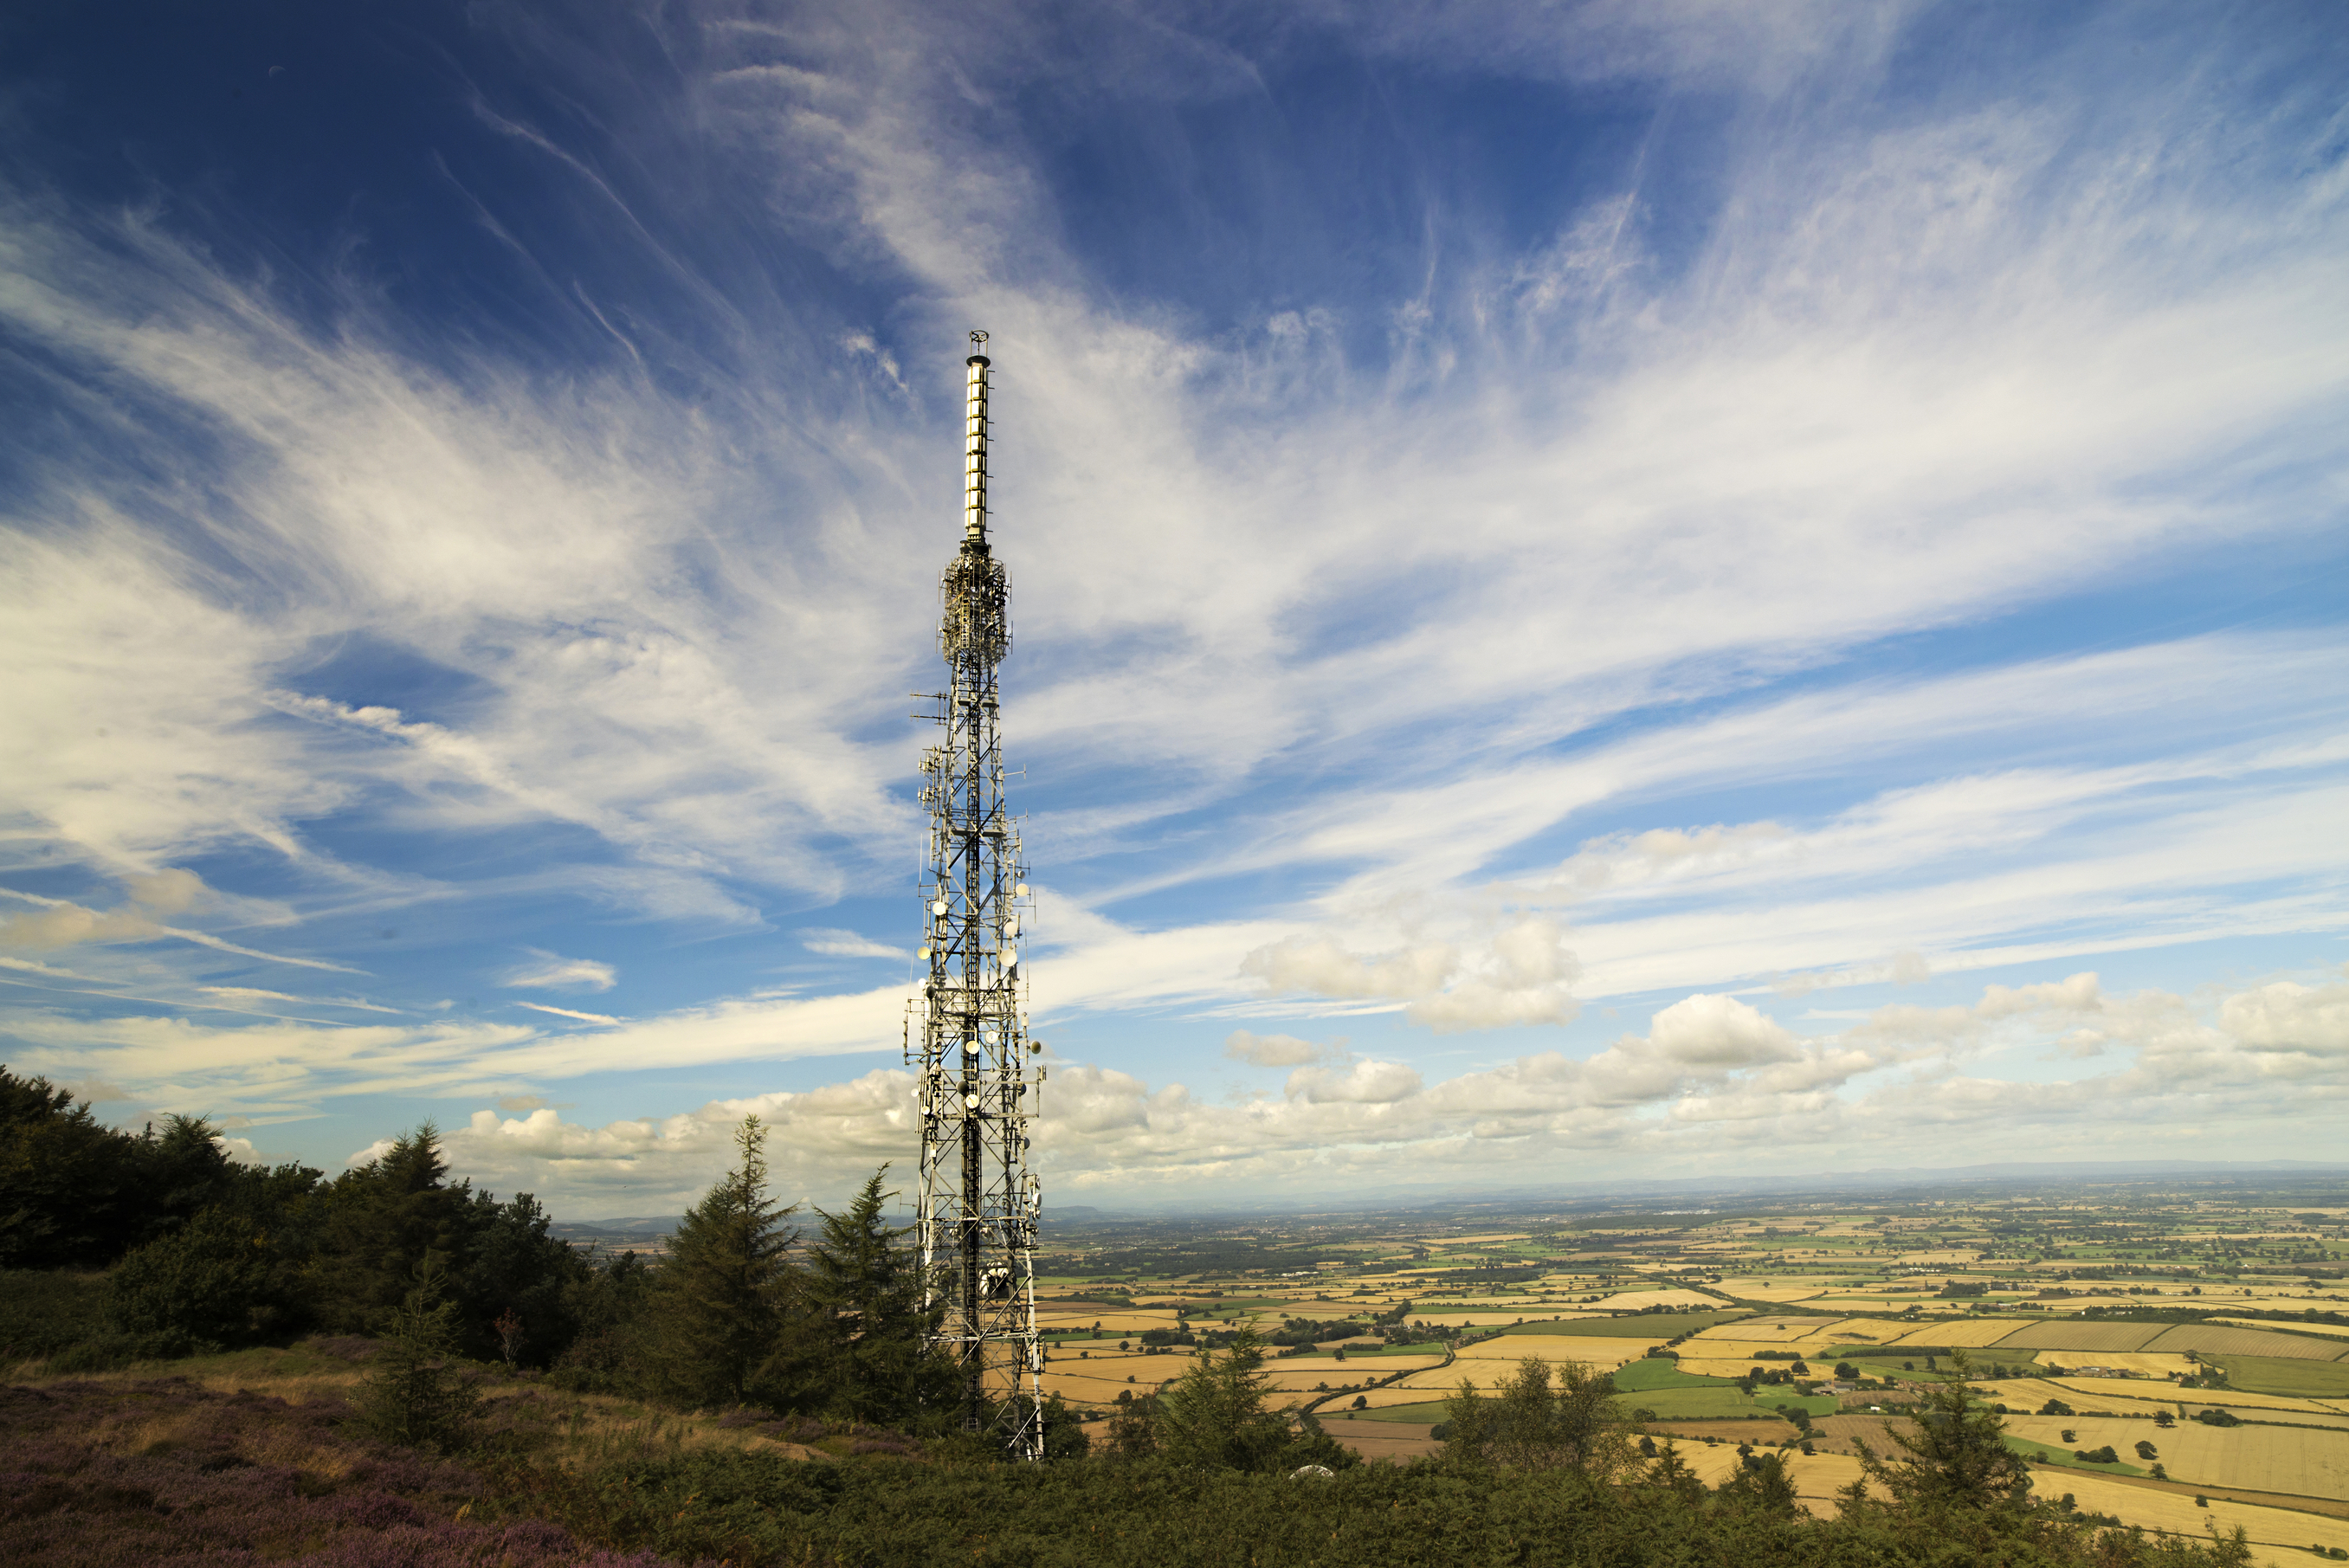 A survey shows landowners are being paid an average annual rent of £6,029 to host phone masts